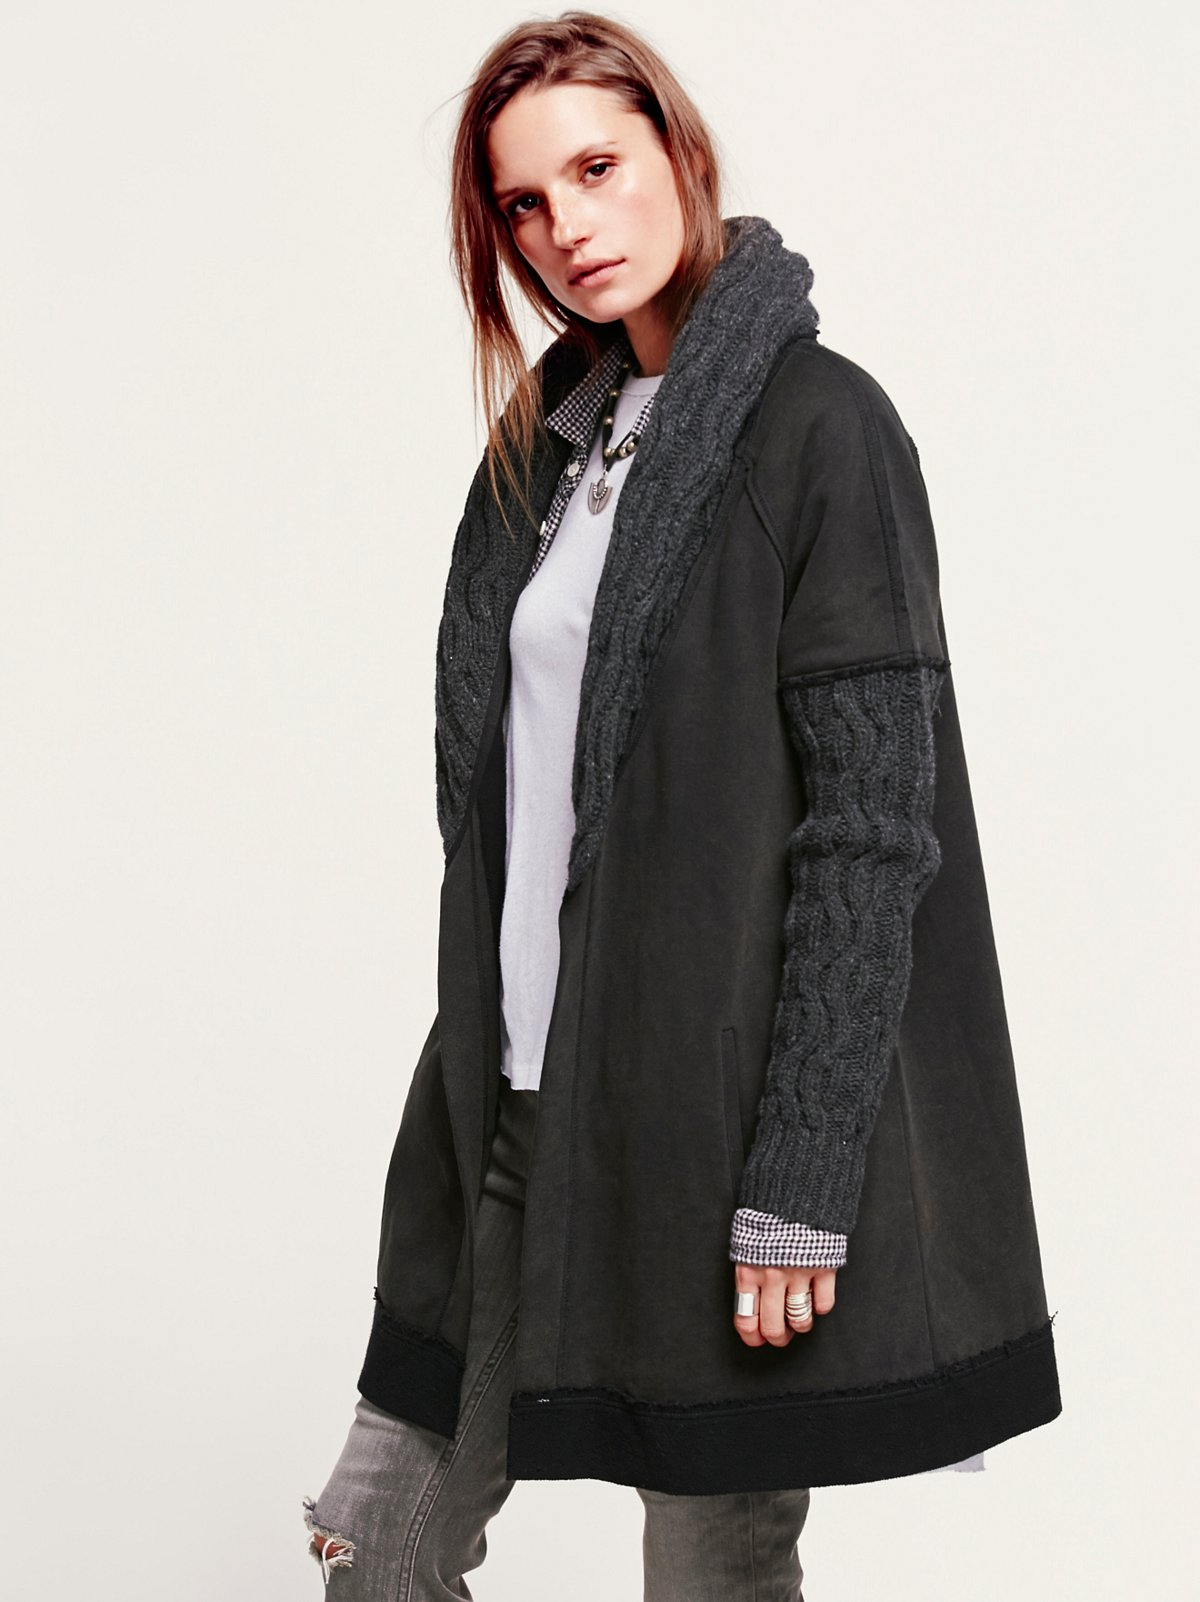 Brownstone Cable Cardigan